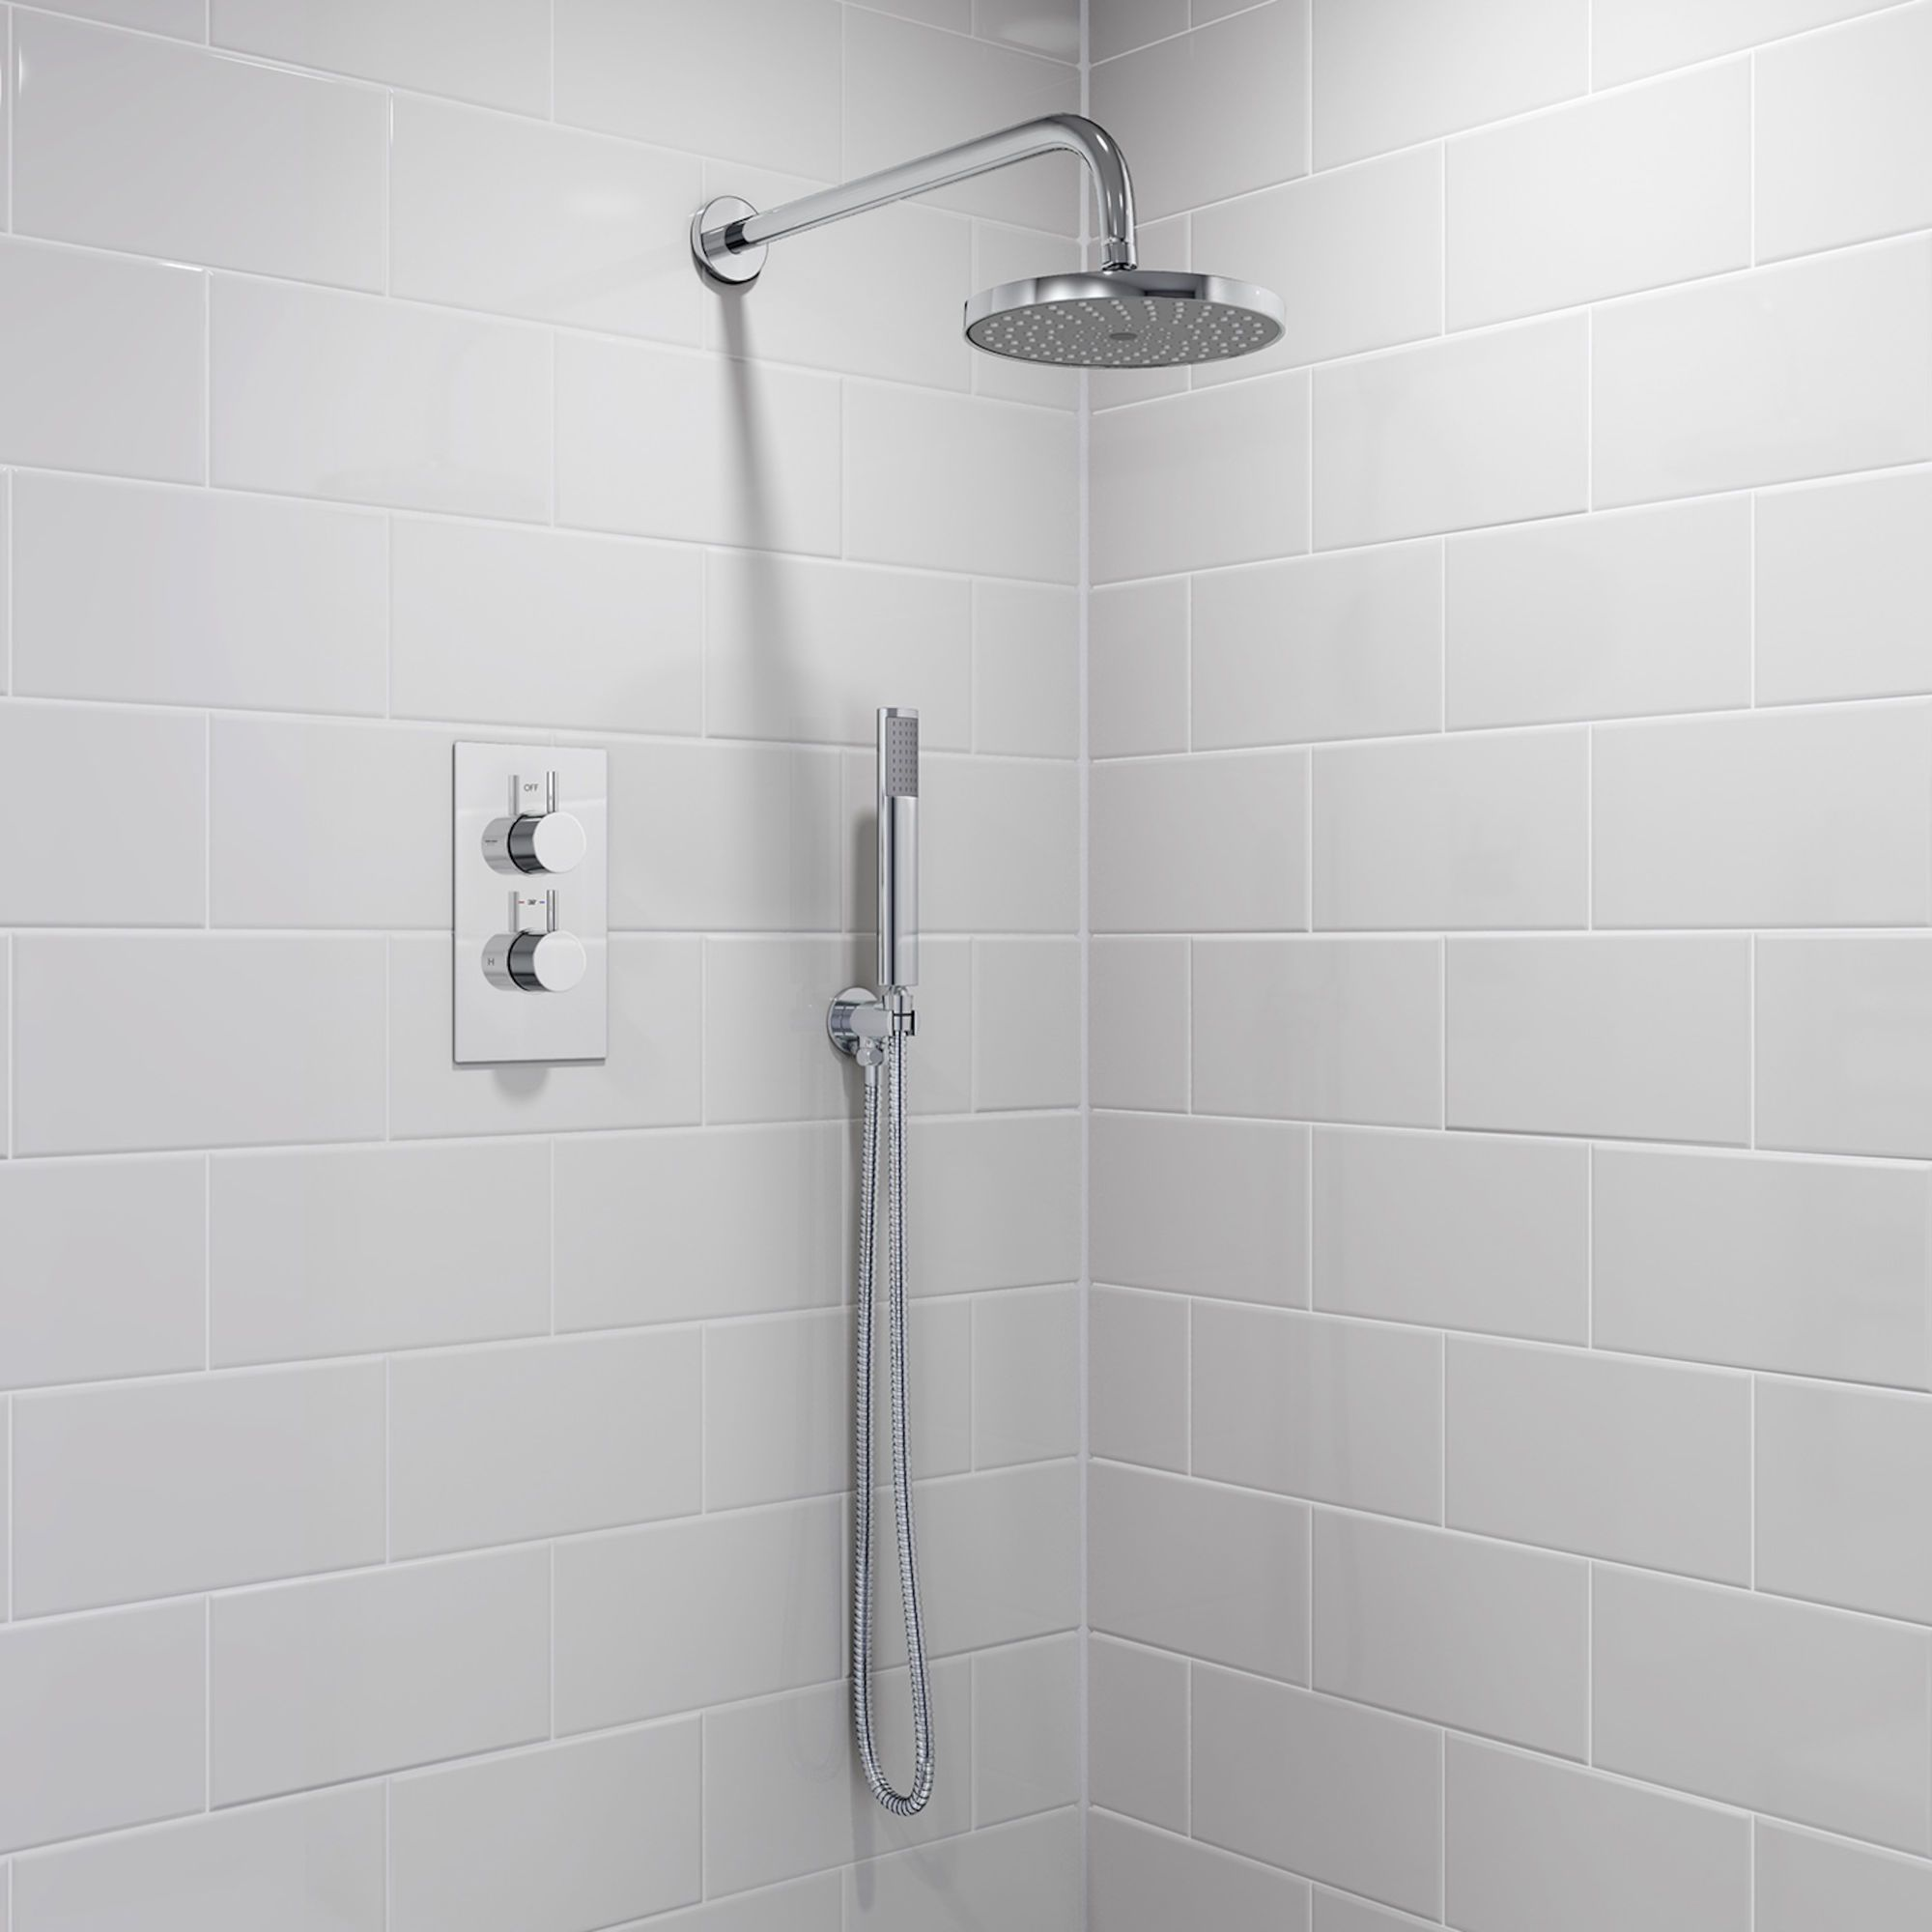 200mm Round Wall Mounted Head, Handheld & Thermostatic